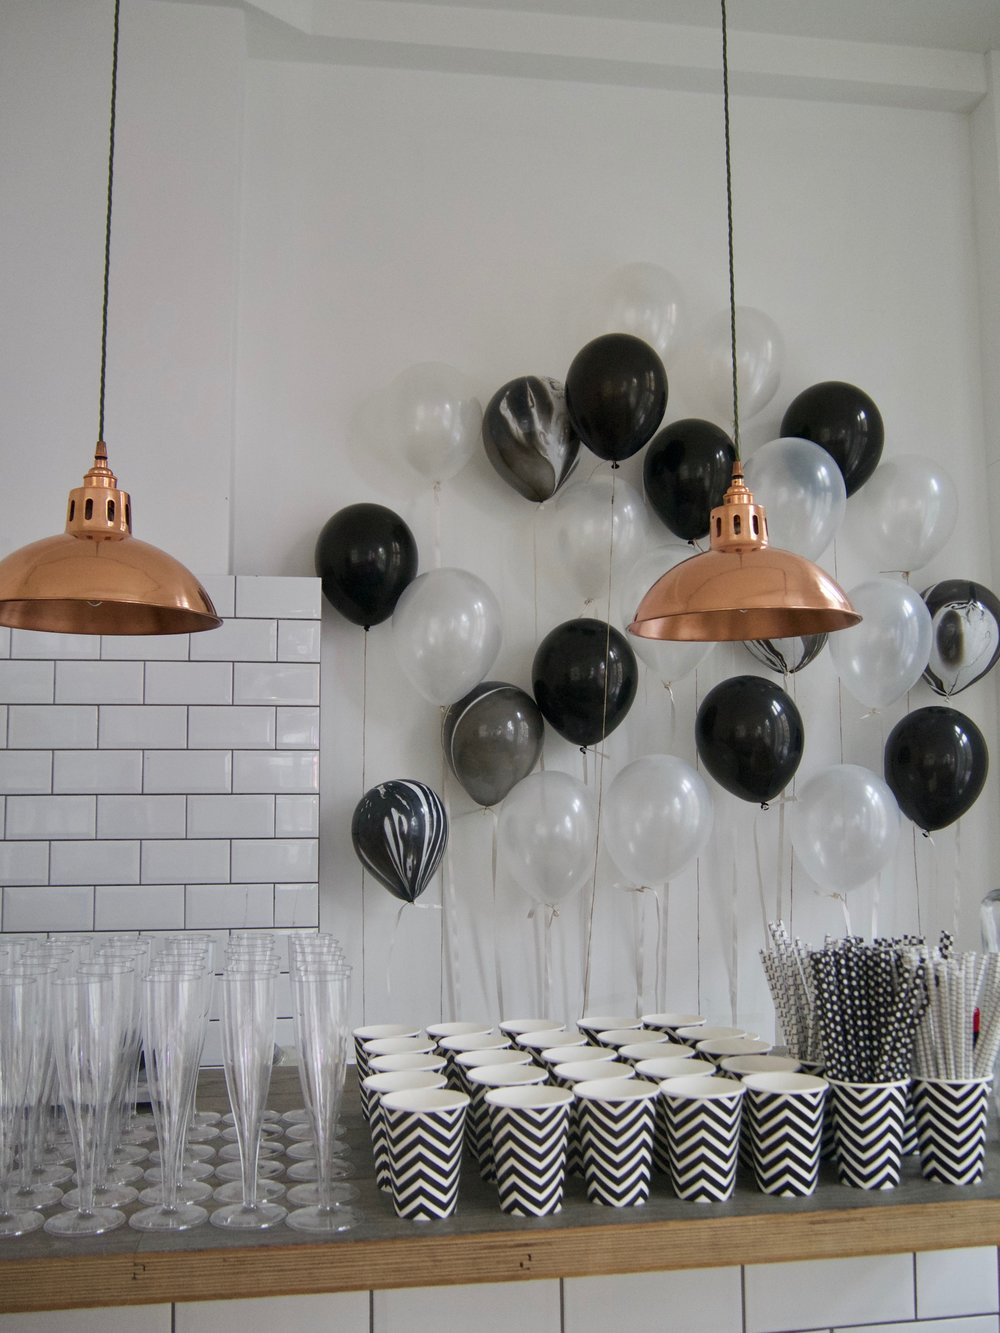 Black and white party How to decorate for a black and white theme6.jpg